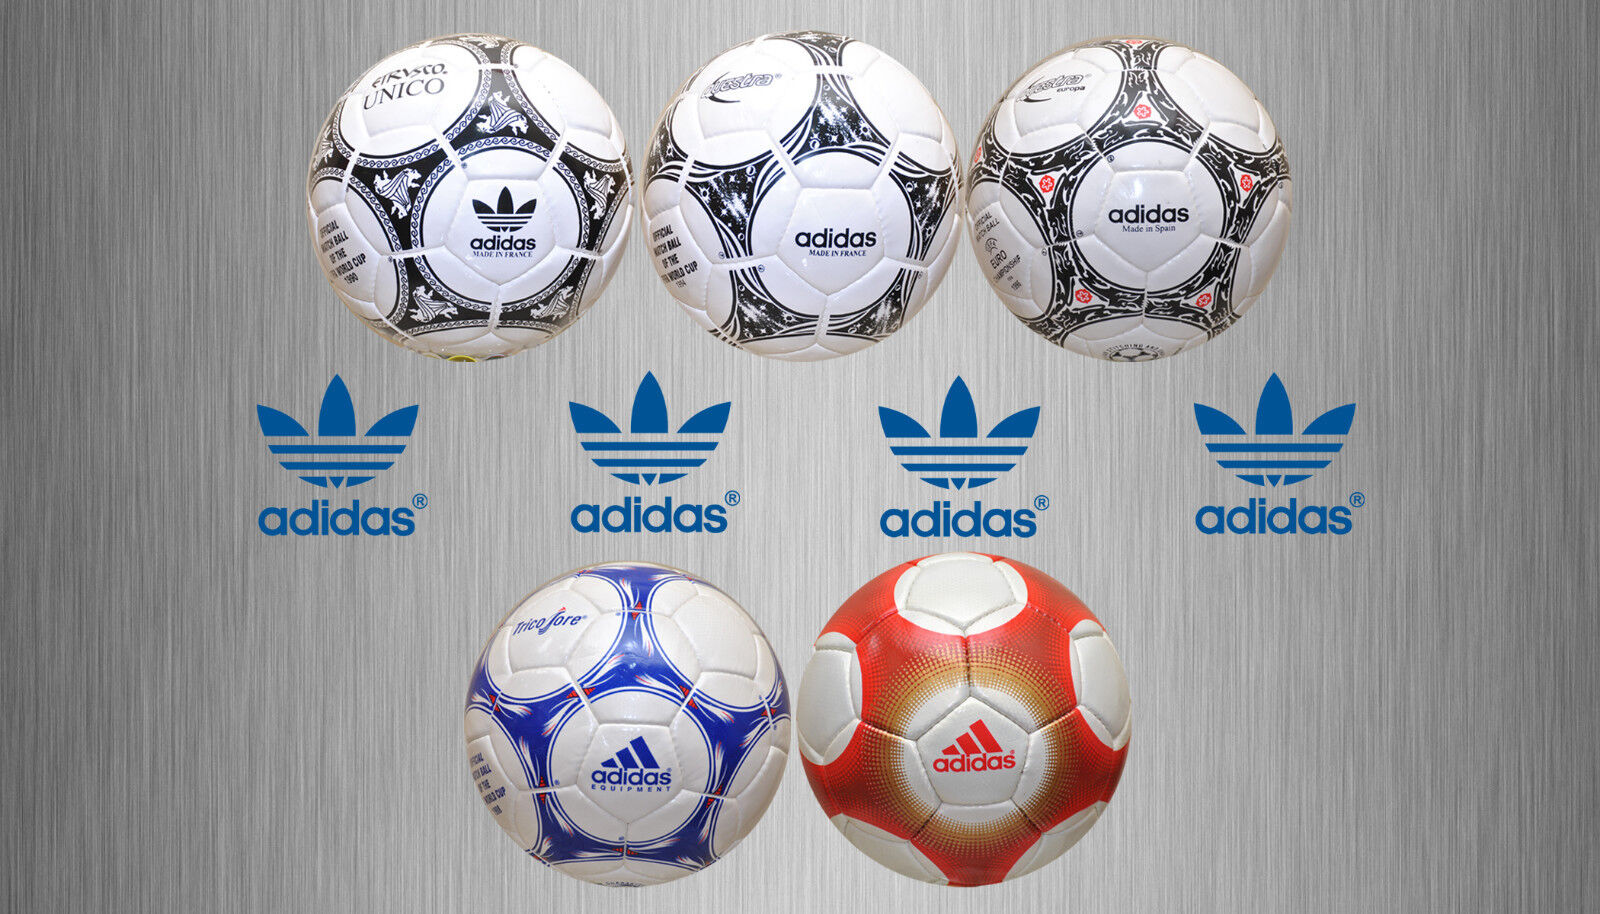 NEW COLLECTION BY ADIDAS WORLD CUP FOOTBALLS(1990 TO 2000)